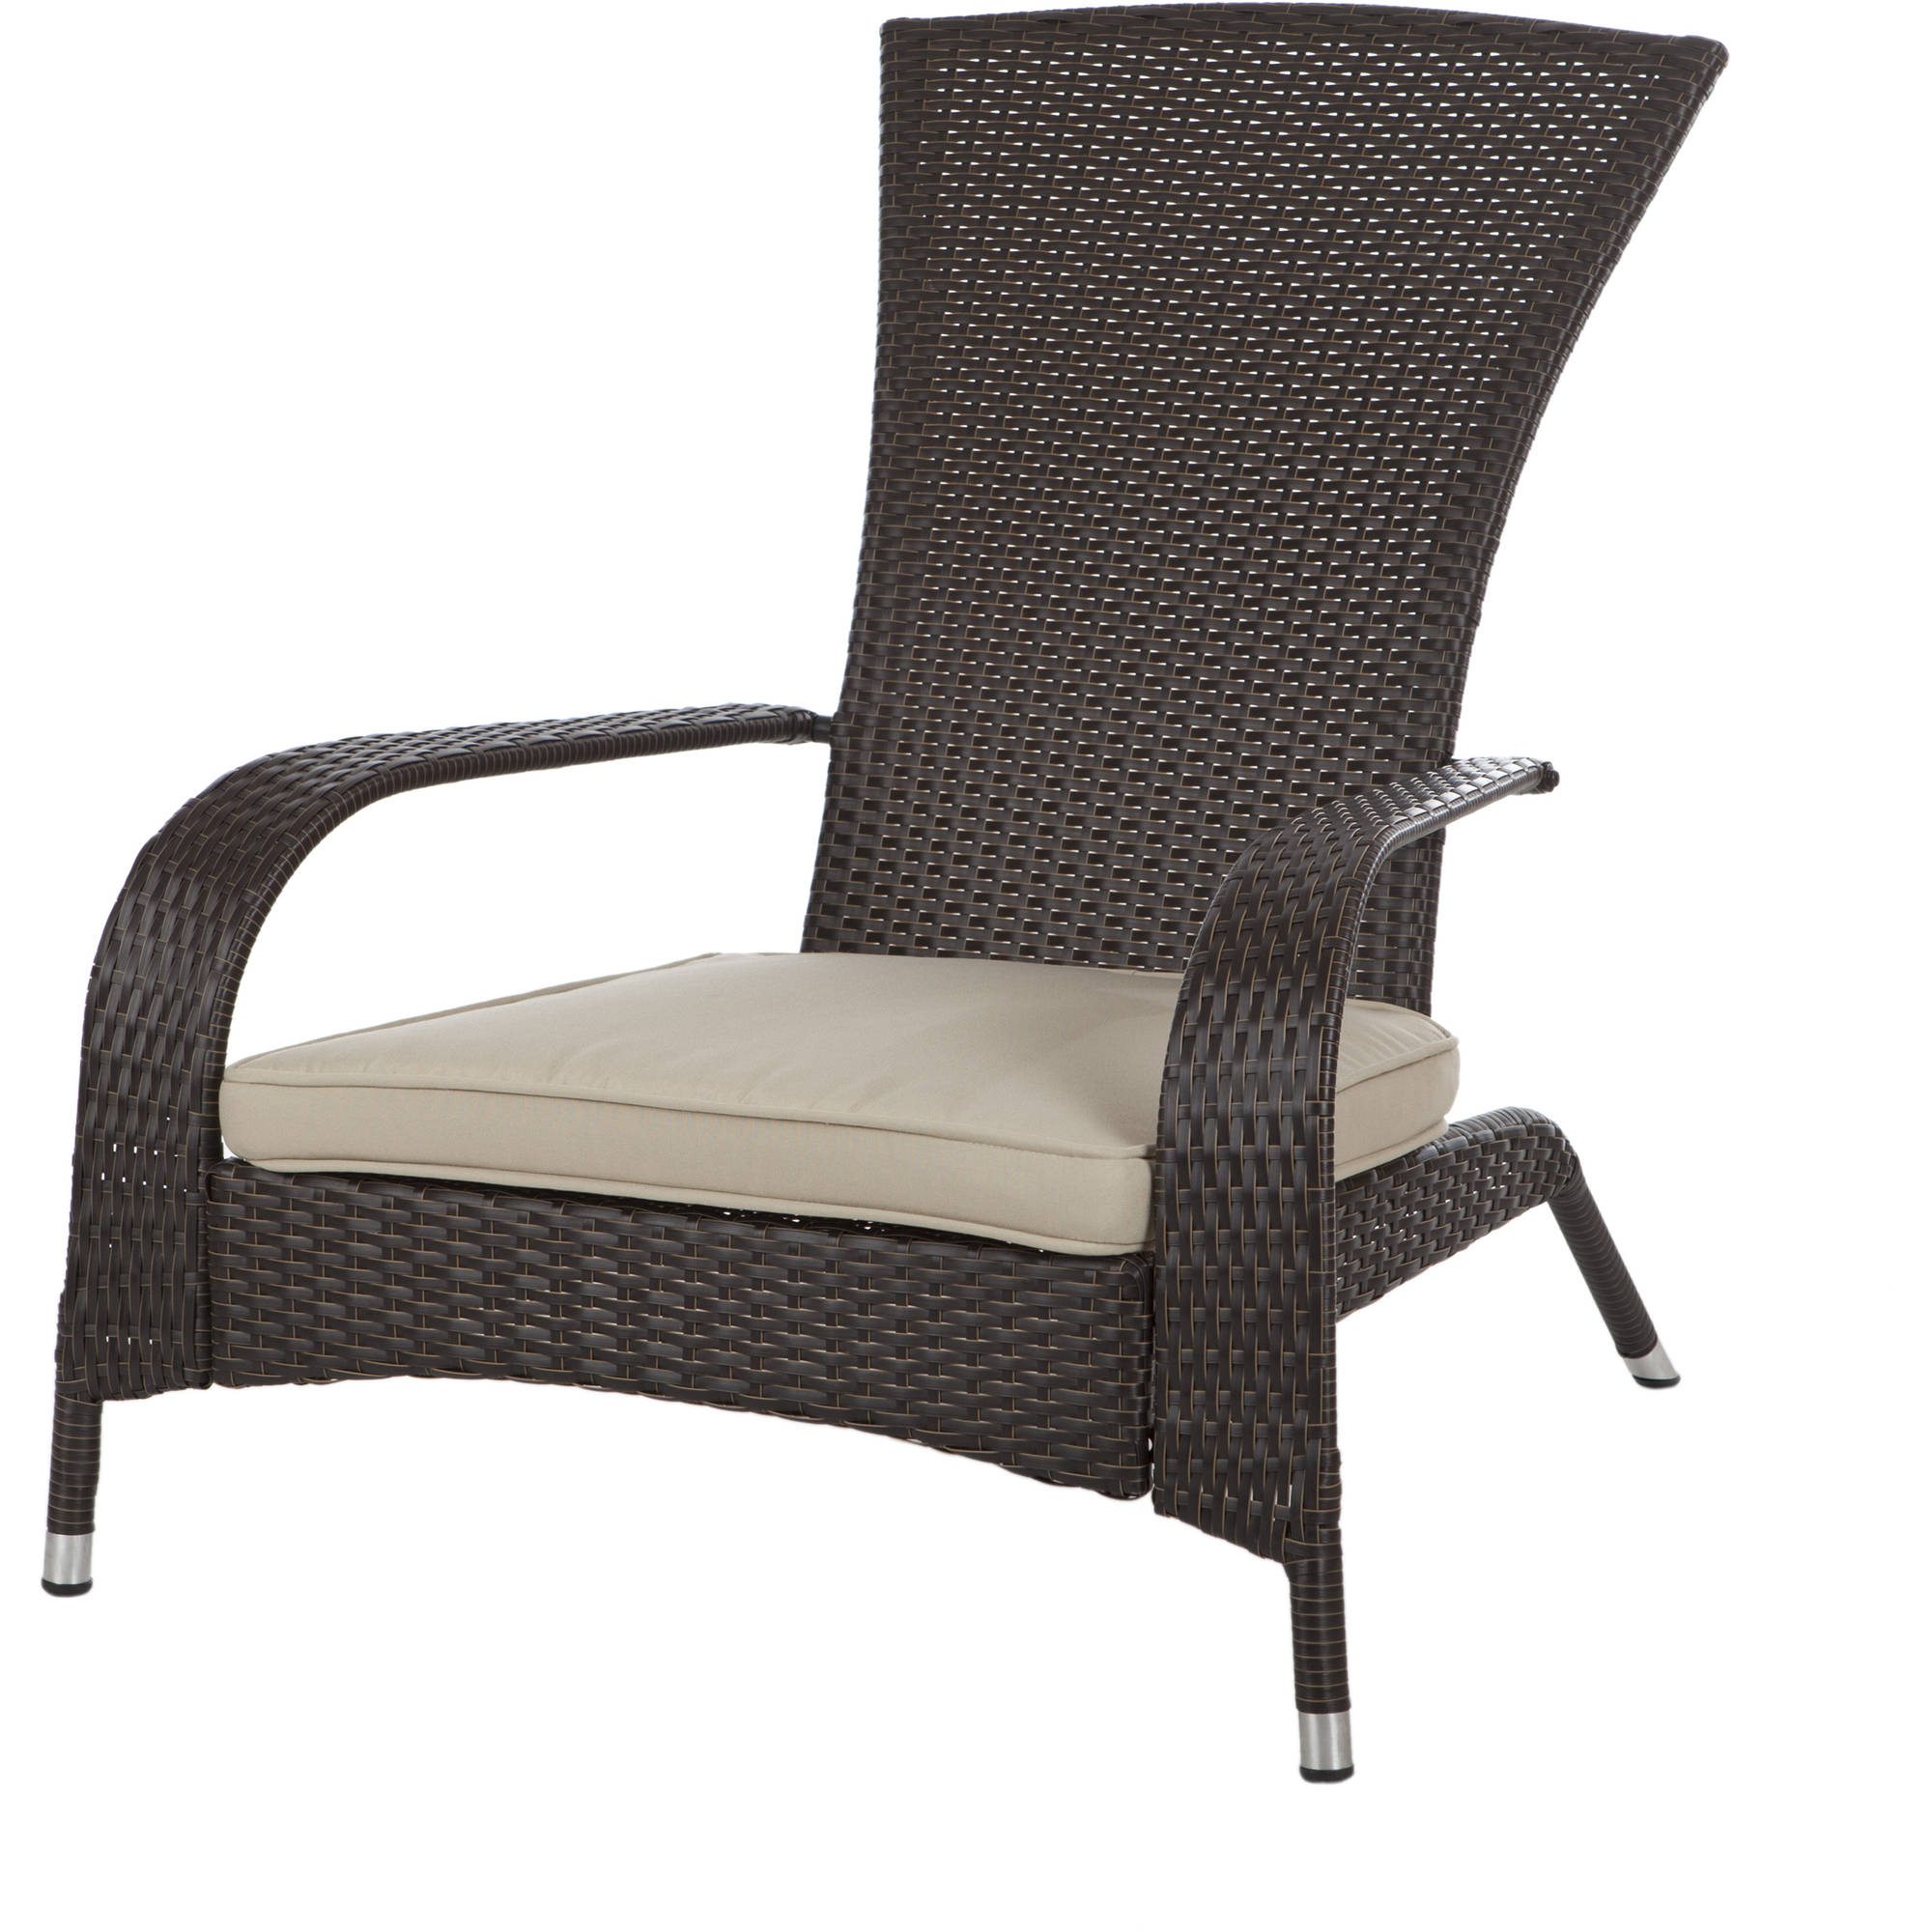 Patio Sense Coconino Wicker Chair Walmartcom